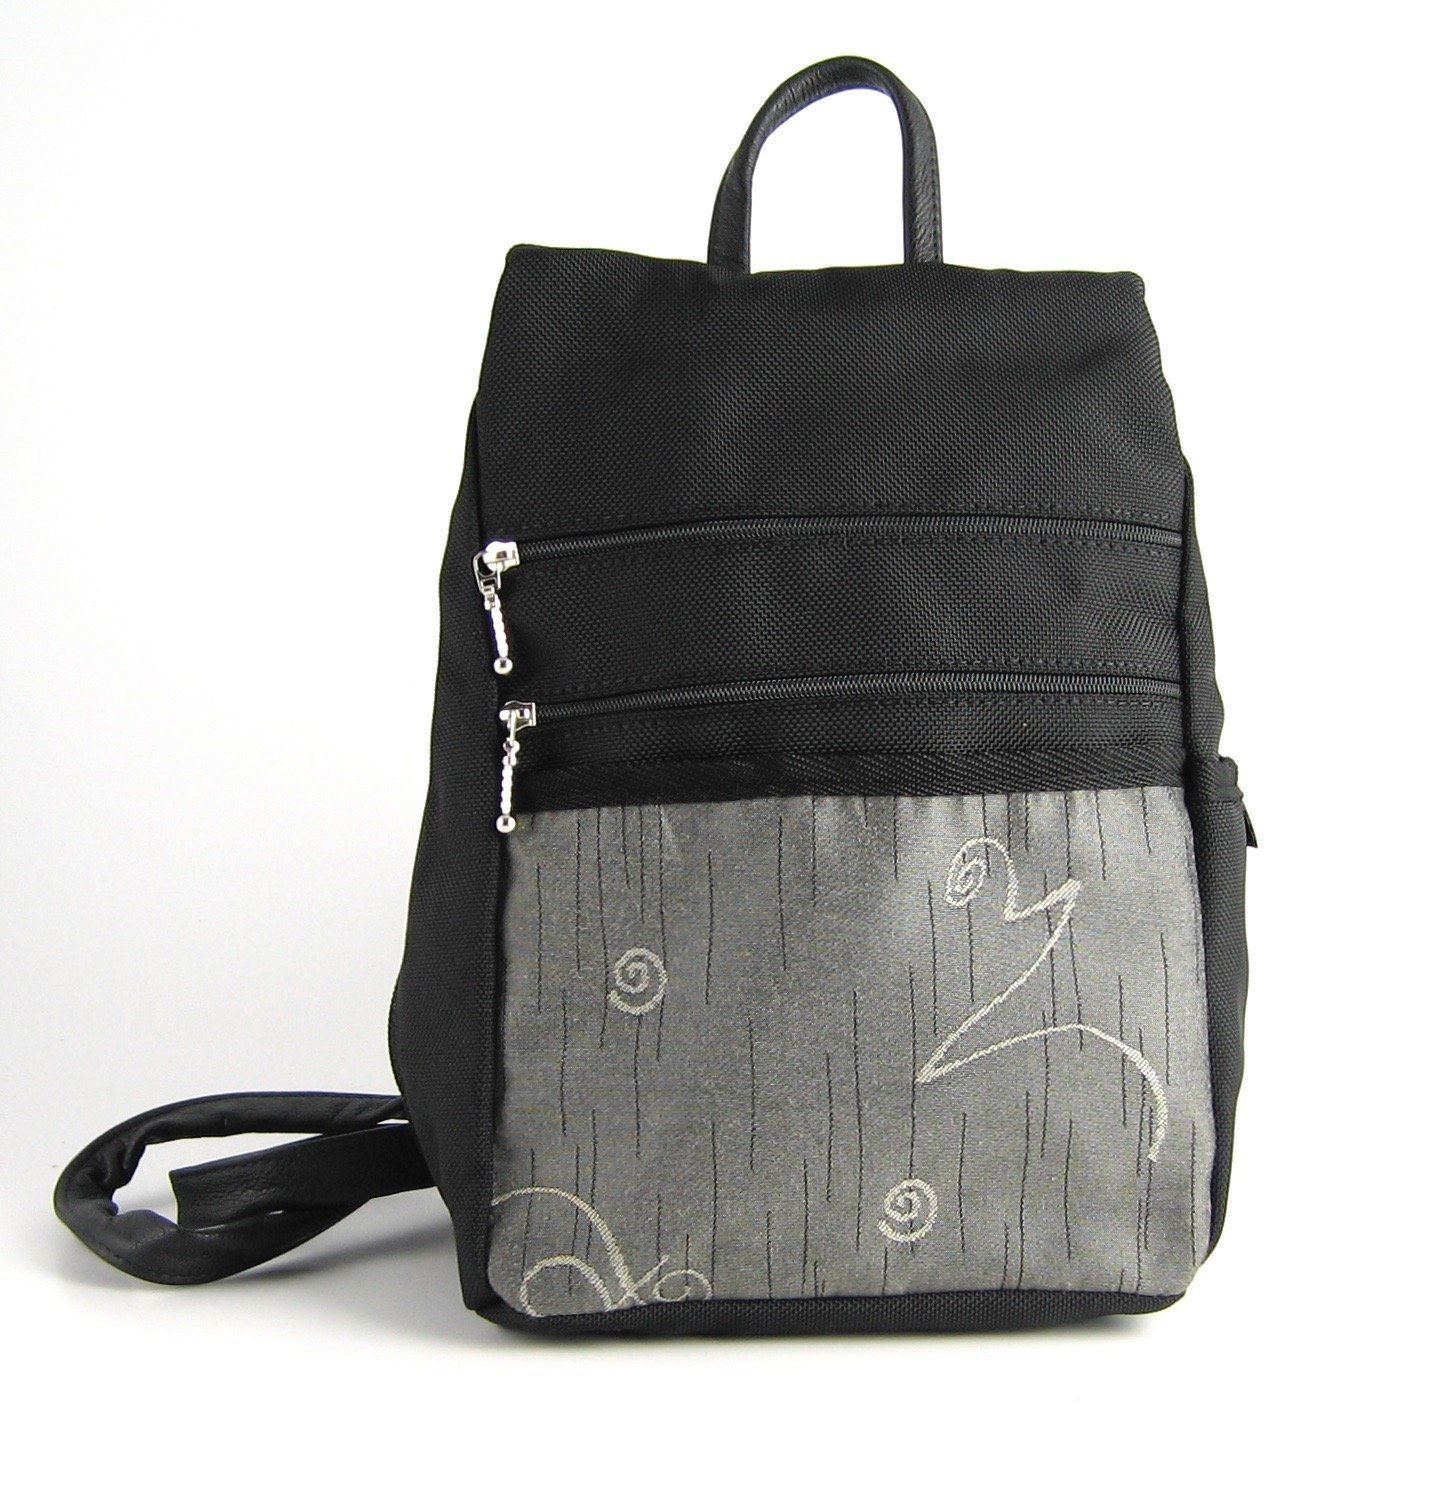 Backpack Purse by GreatBags   Small Black Womens + Lightweight + Stylish + Durable